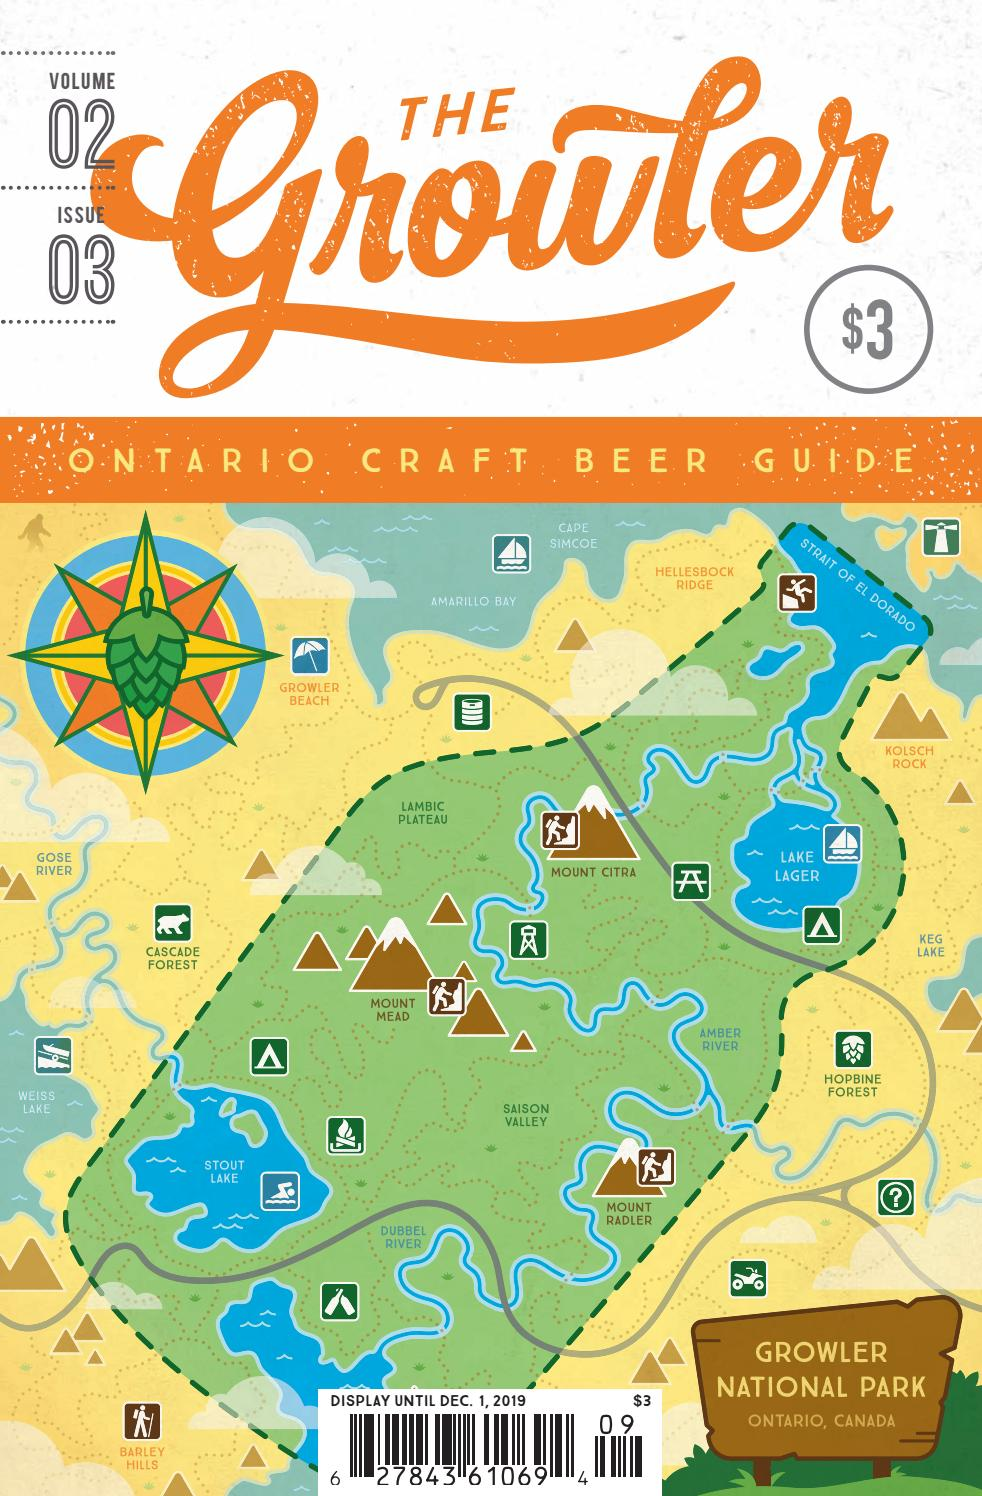 Embruns Du Couchant Wow : embruns, couchant, Growler, Ontario, Volume, Issue, Craft, Guides, Issuu